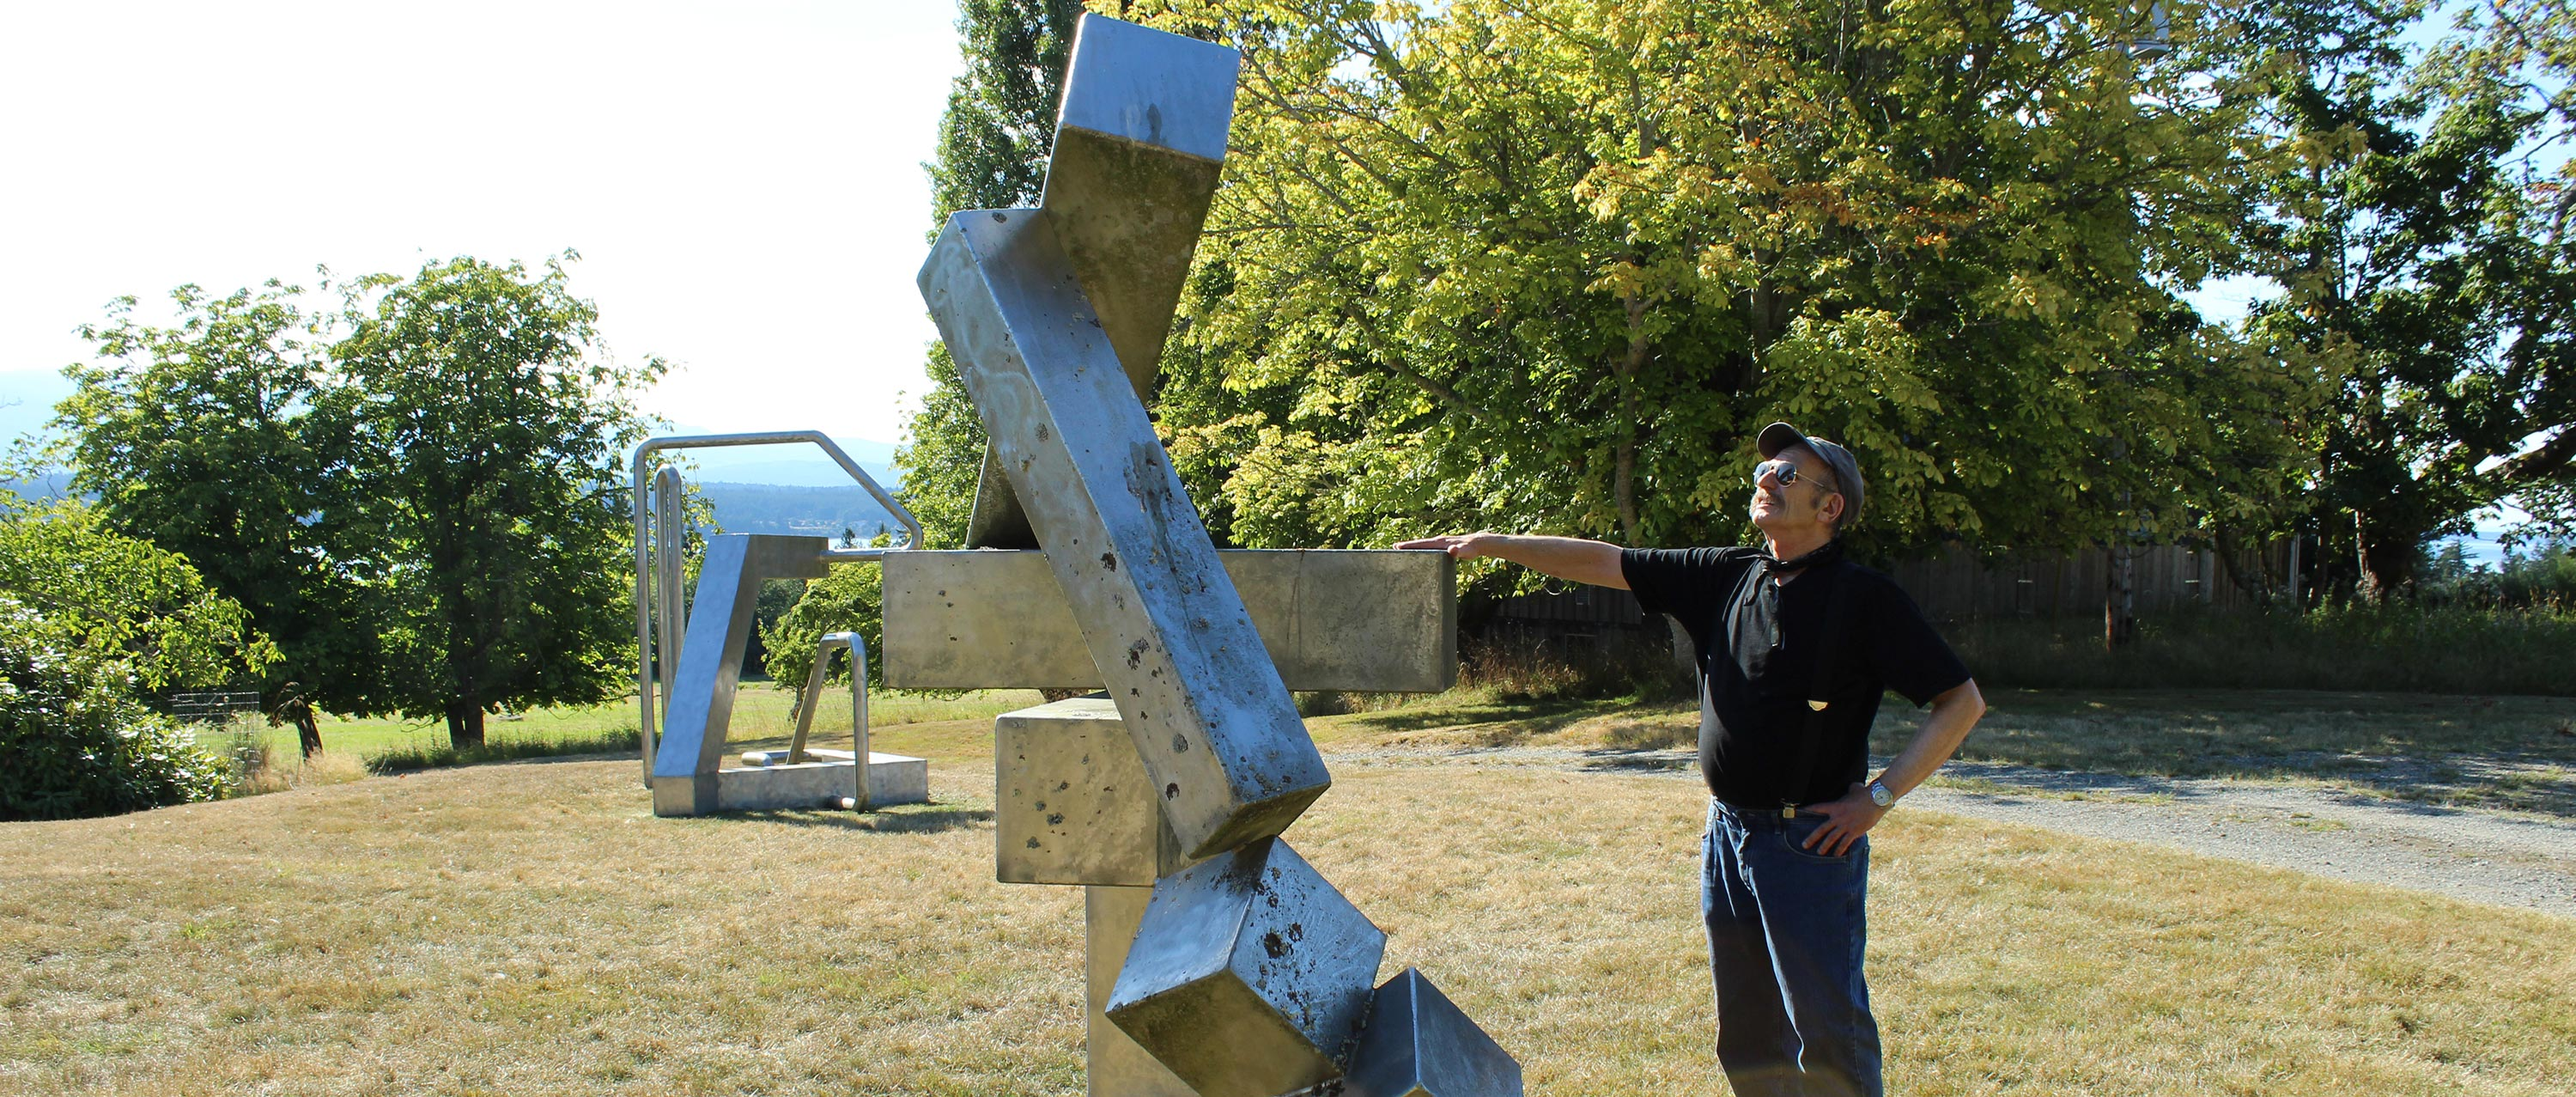 "JEFFREY RUBINOFF WITH HIS SCULPTURE ""SERIES 9-6"""